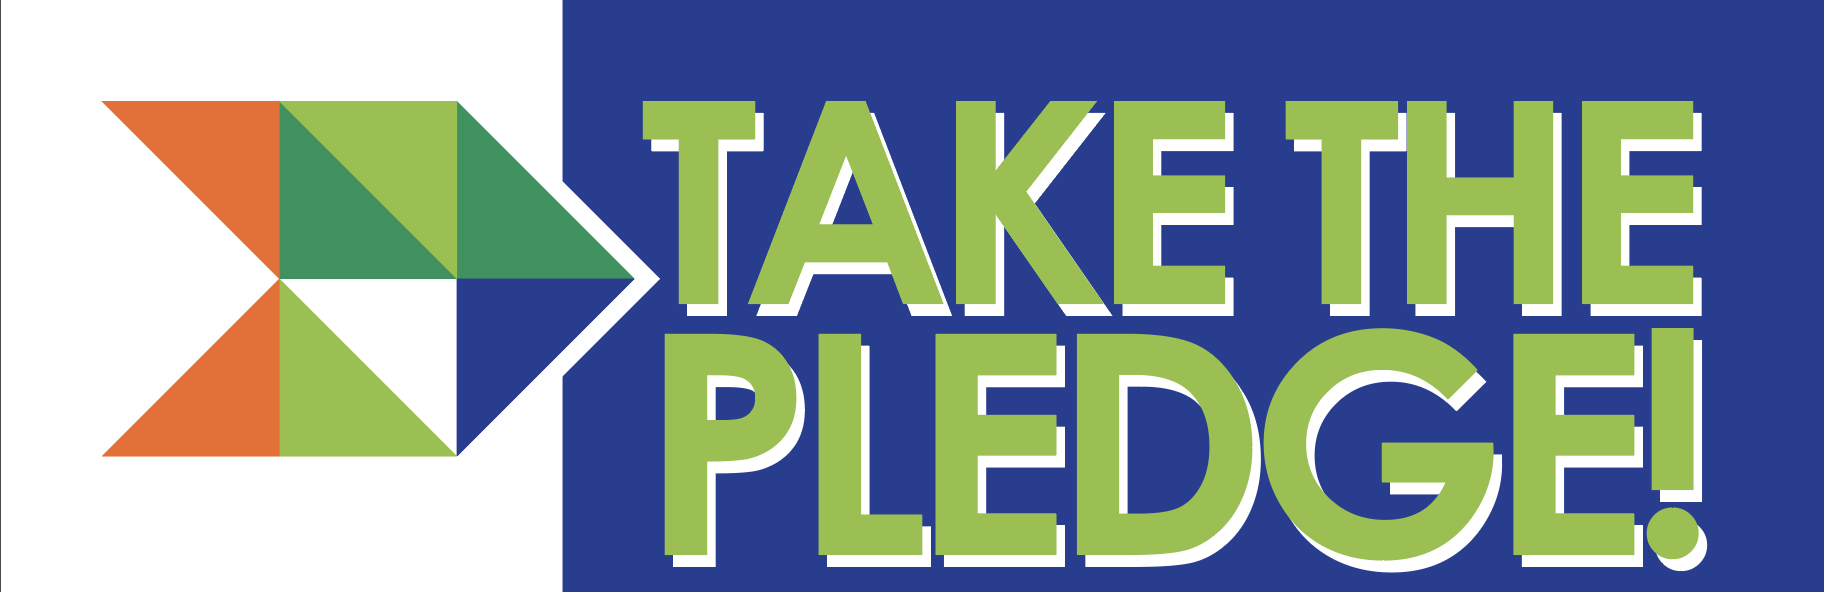 Pledge_Decal.png